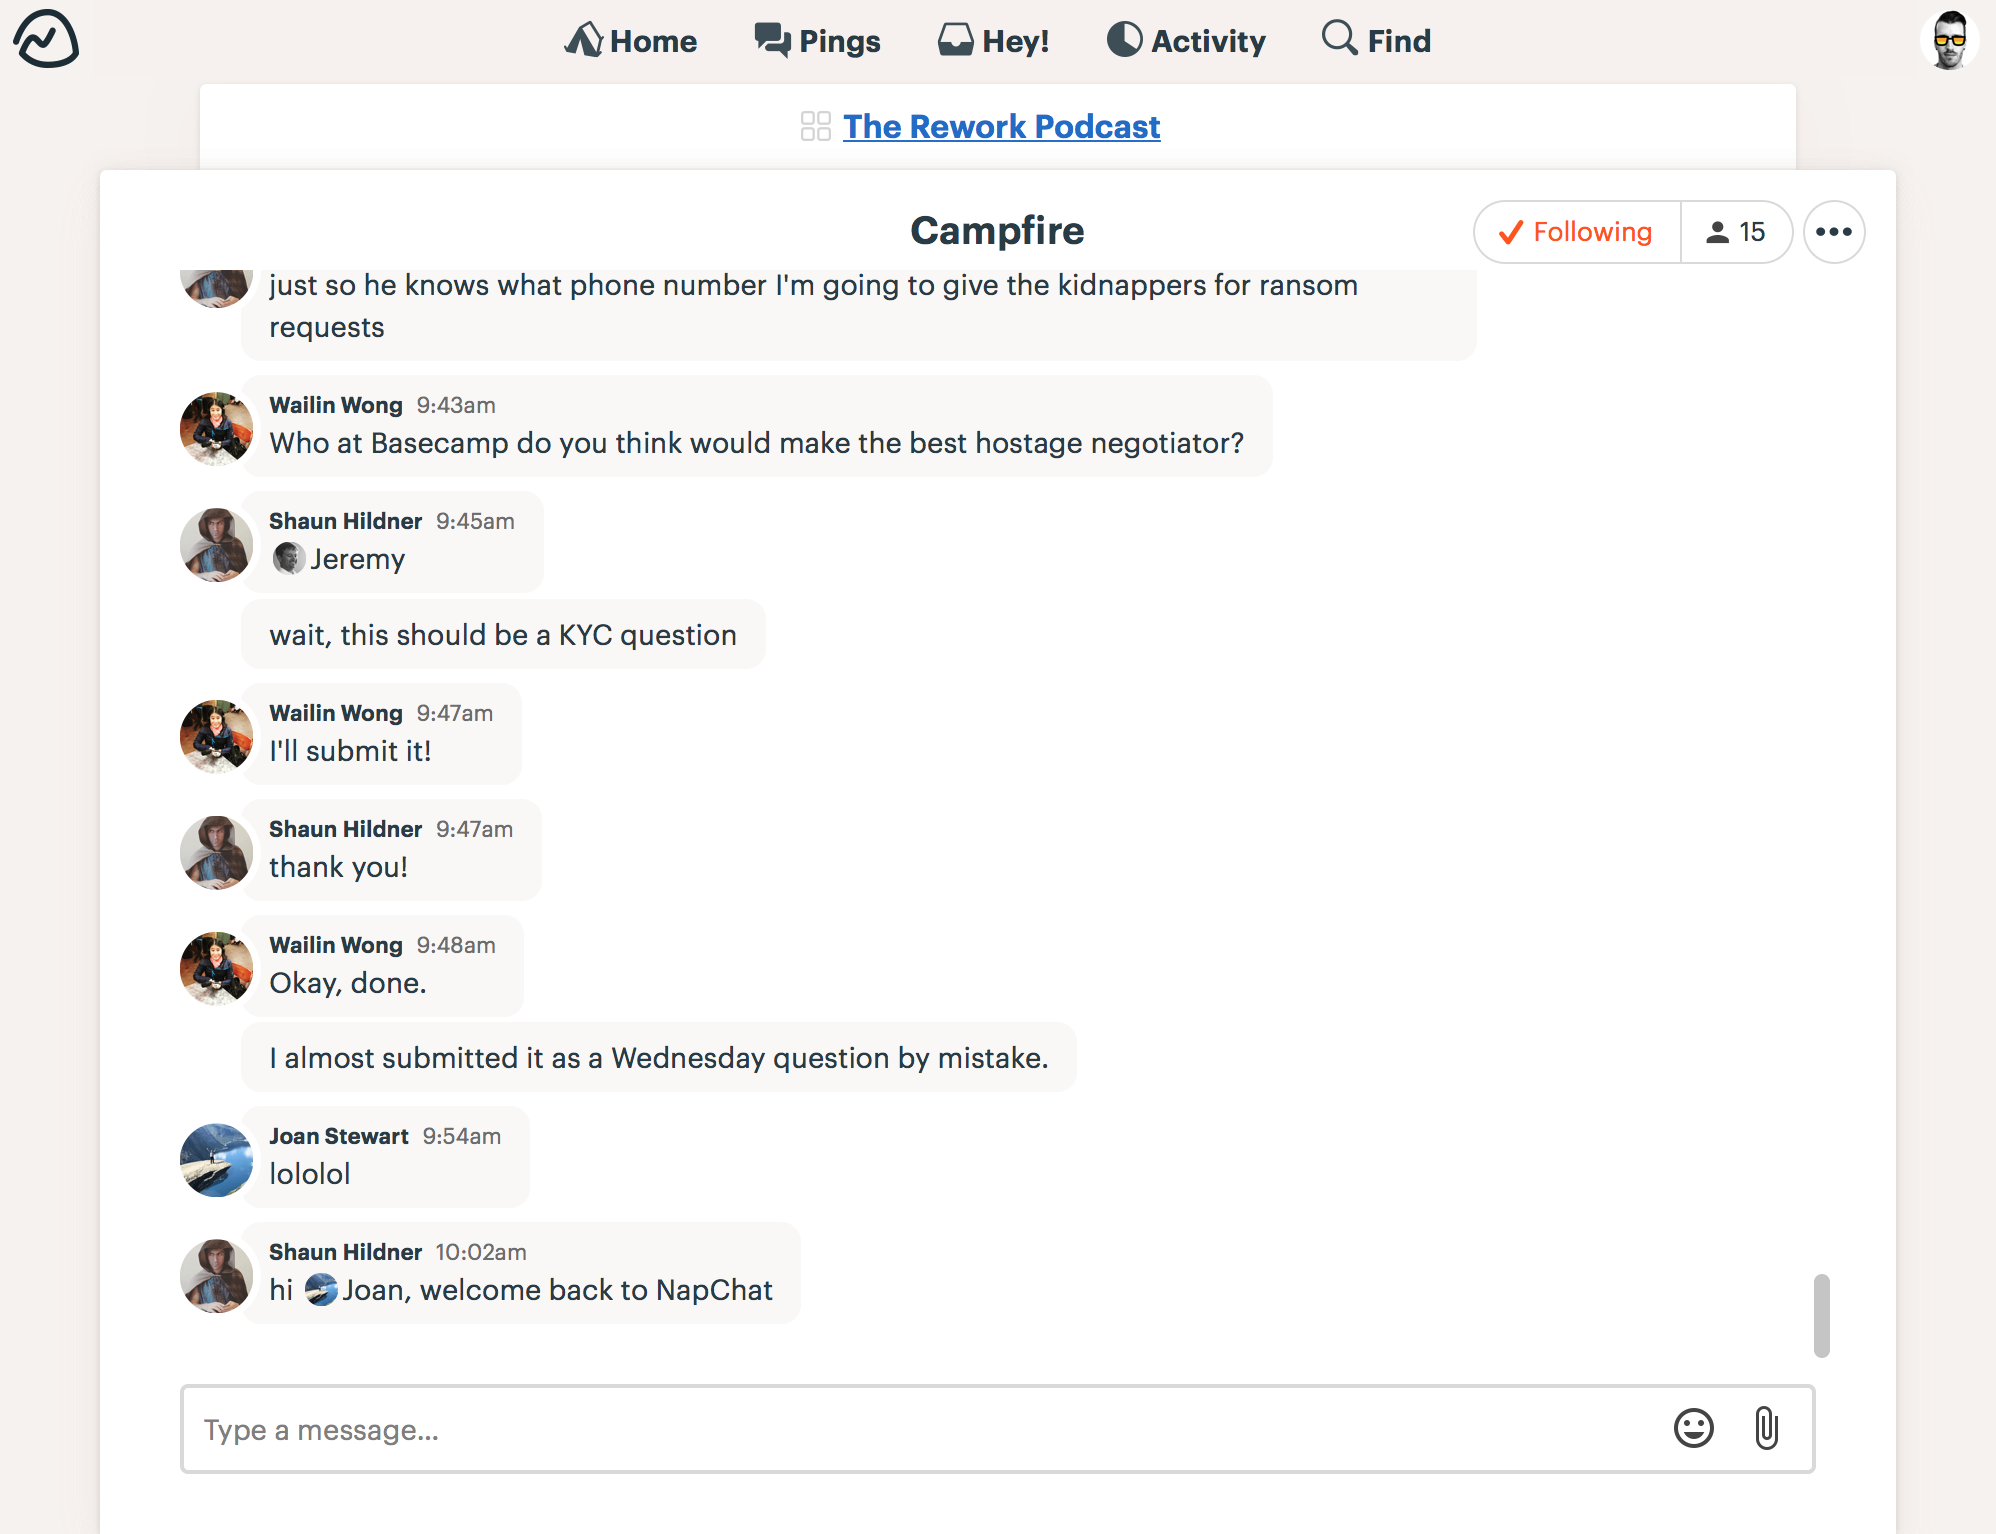 Basecamp real-time chat